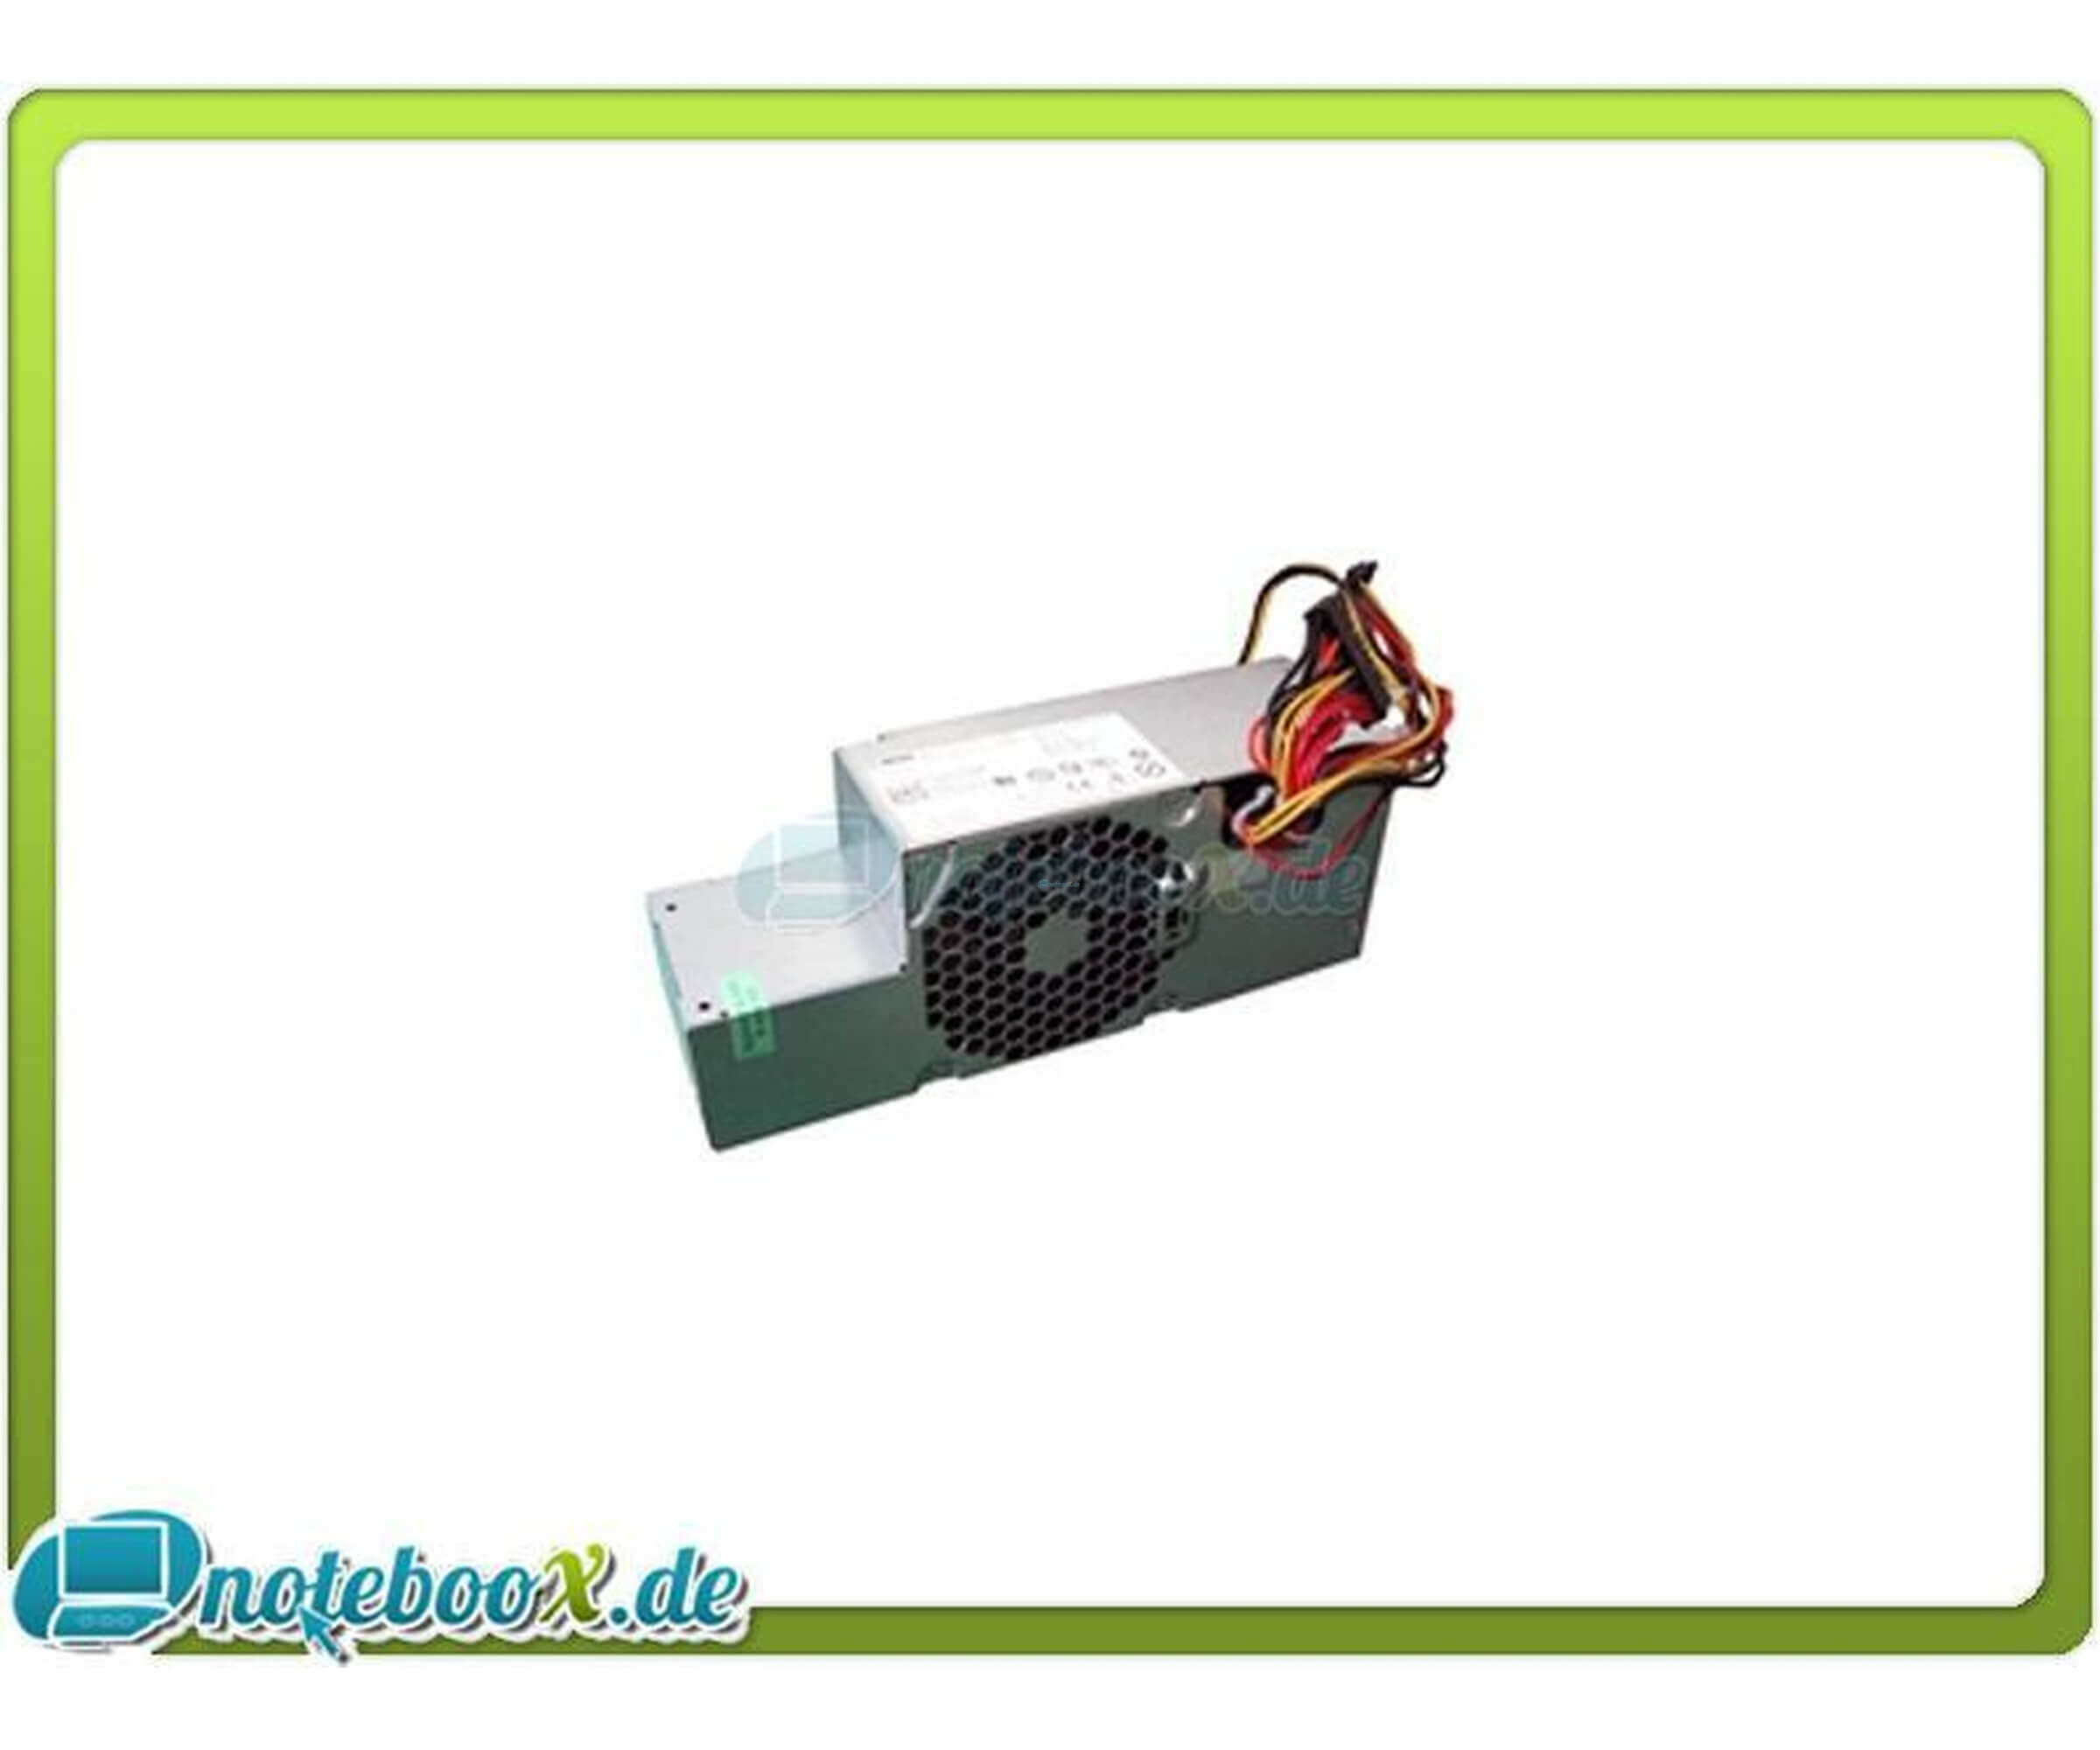 Delta - Power Supply Module - Netzteil - DPS-280HB A - 280 Watt